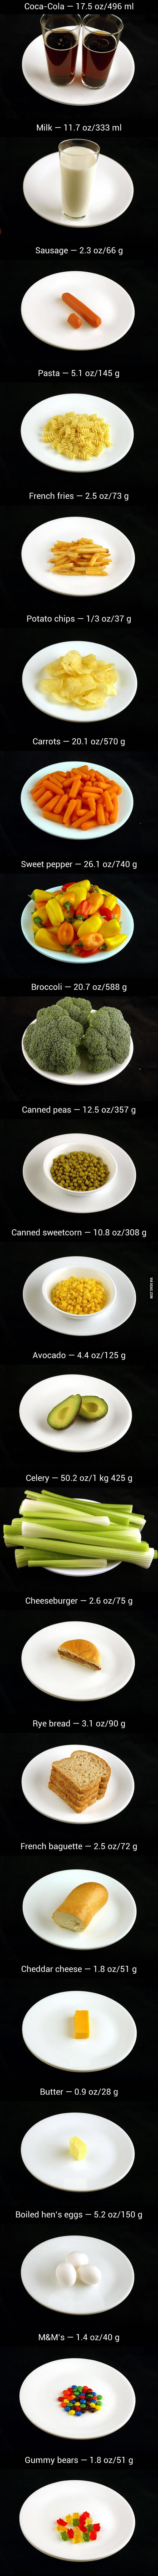 That's What 200 Calories of Food Looks Like